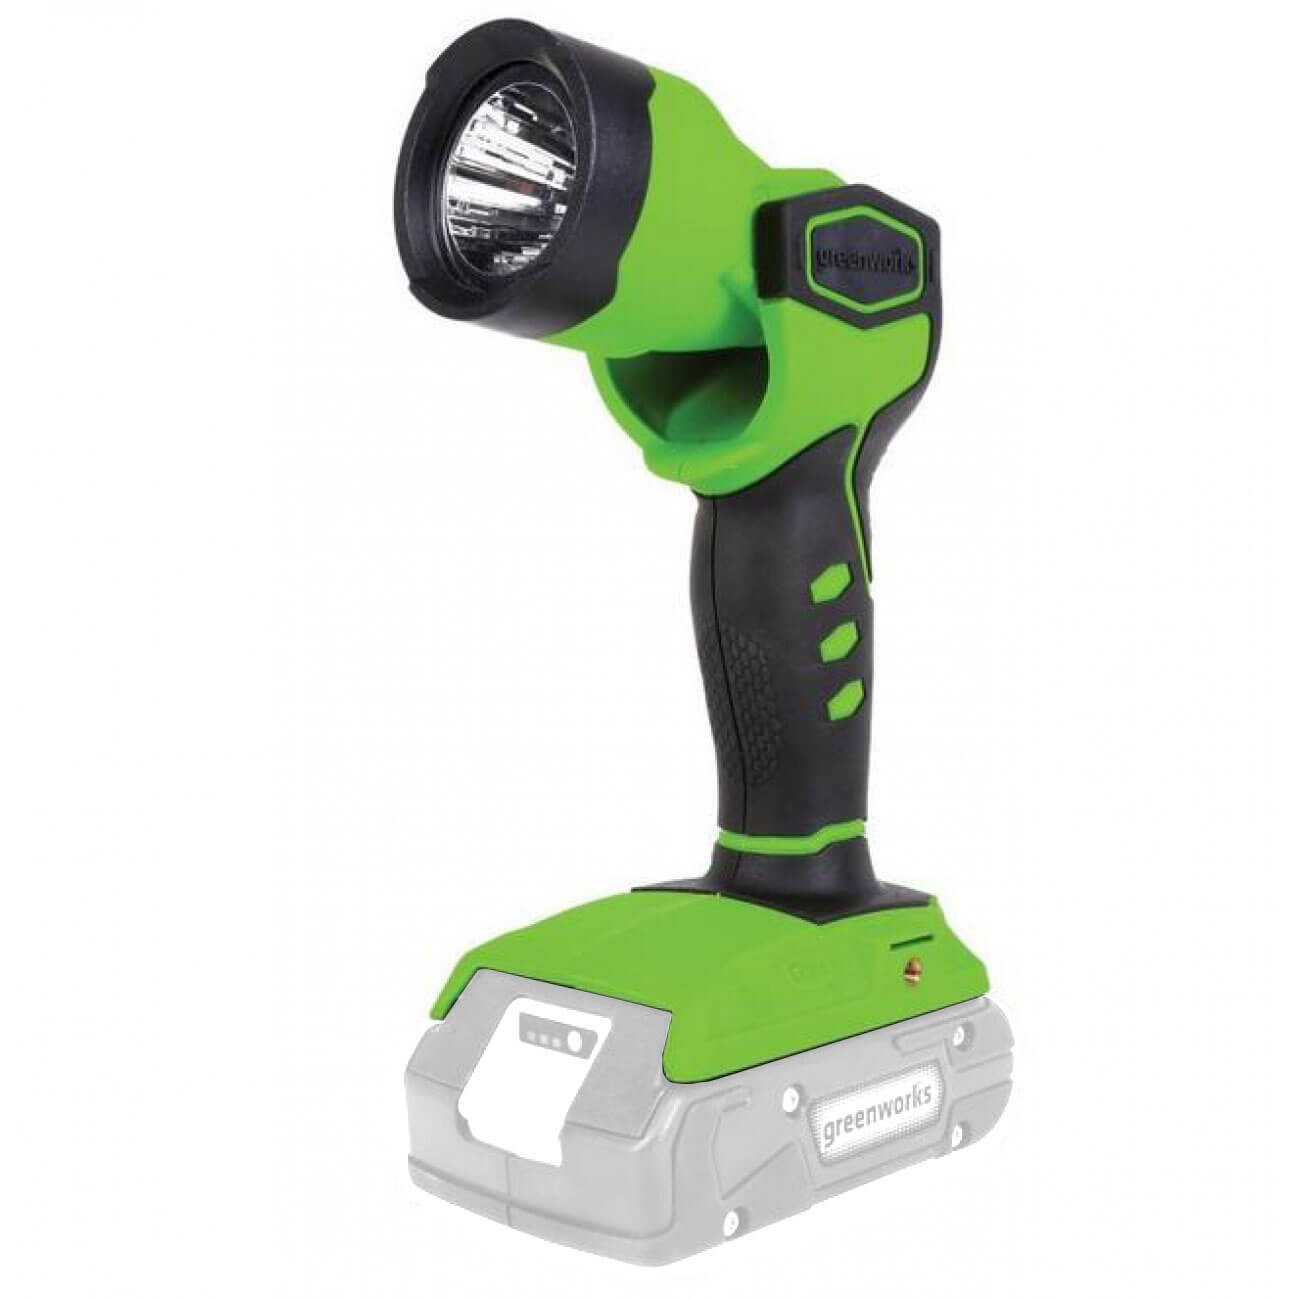 Image of Greenworks G24WL 24v Cordless Work Light without Battery or Charger